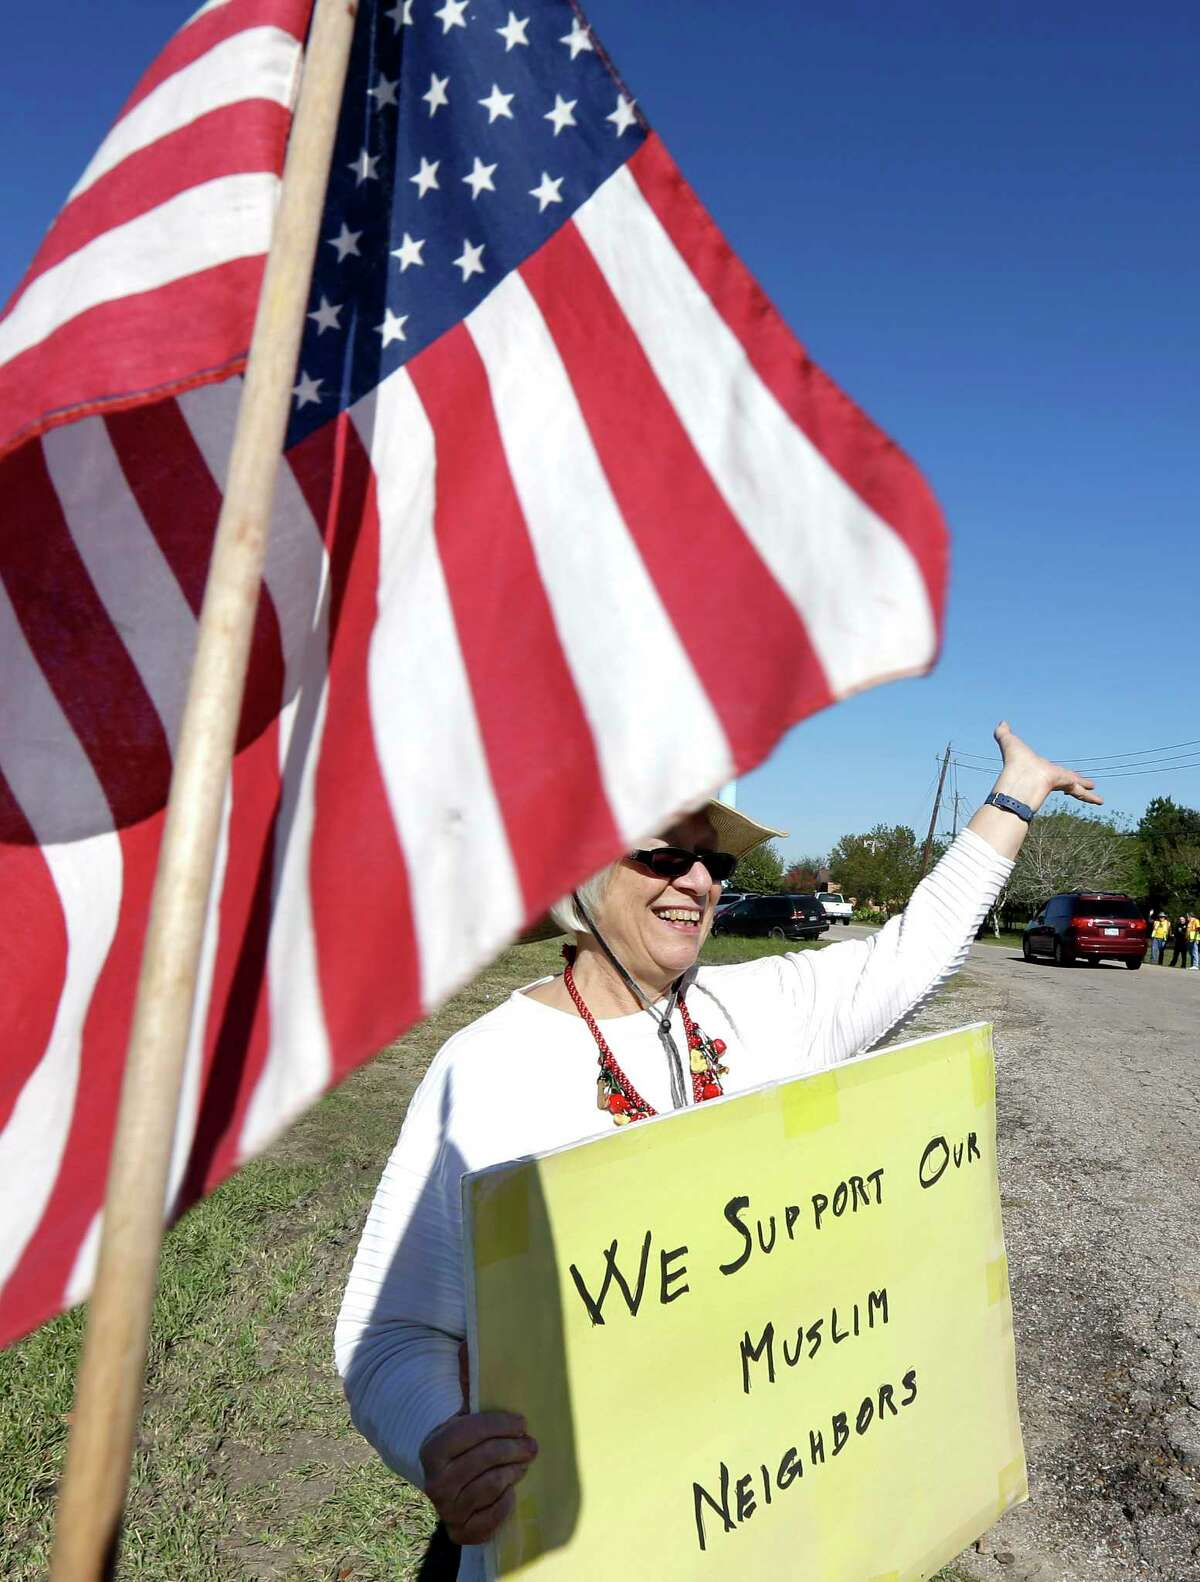 Jane Malin holds a sign as she waves to passing cars during a rally to show support for Muslim members of the community near the Clear Lake Islamic Center in Webster, Texas on Friday, Dec. 4, 2015. Members of several Unitarian Universalist churches and the Unitarian Voices for Justice group showed their support as attendees made their way to the center for Friday prayers. Organizers said the rally was scheduled prior to Wednesday's mass shooting in San Bernardino, Calif.